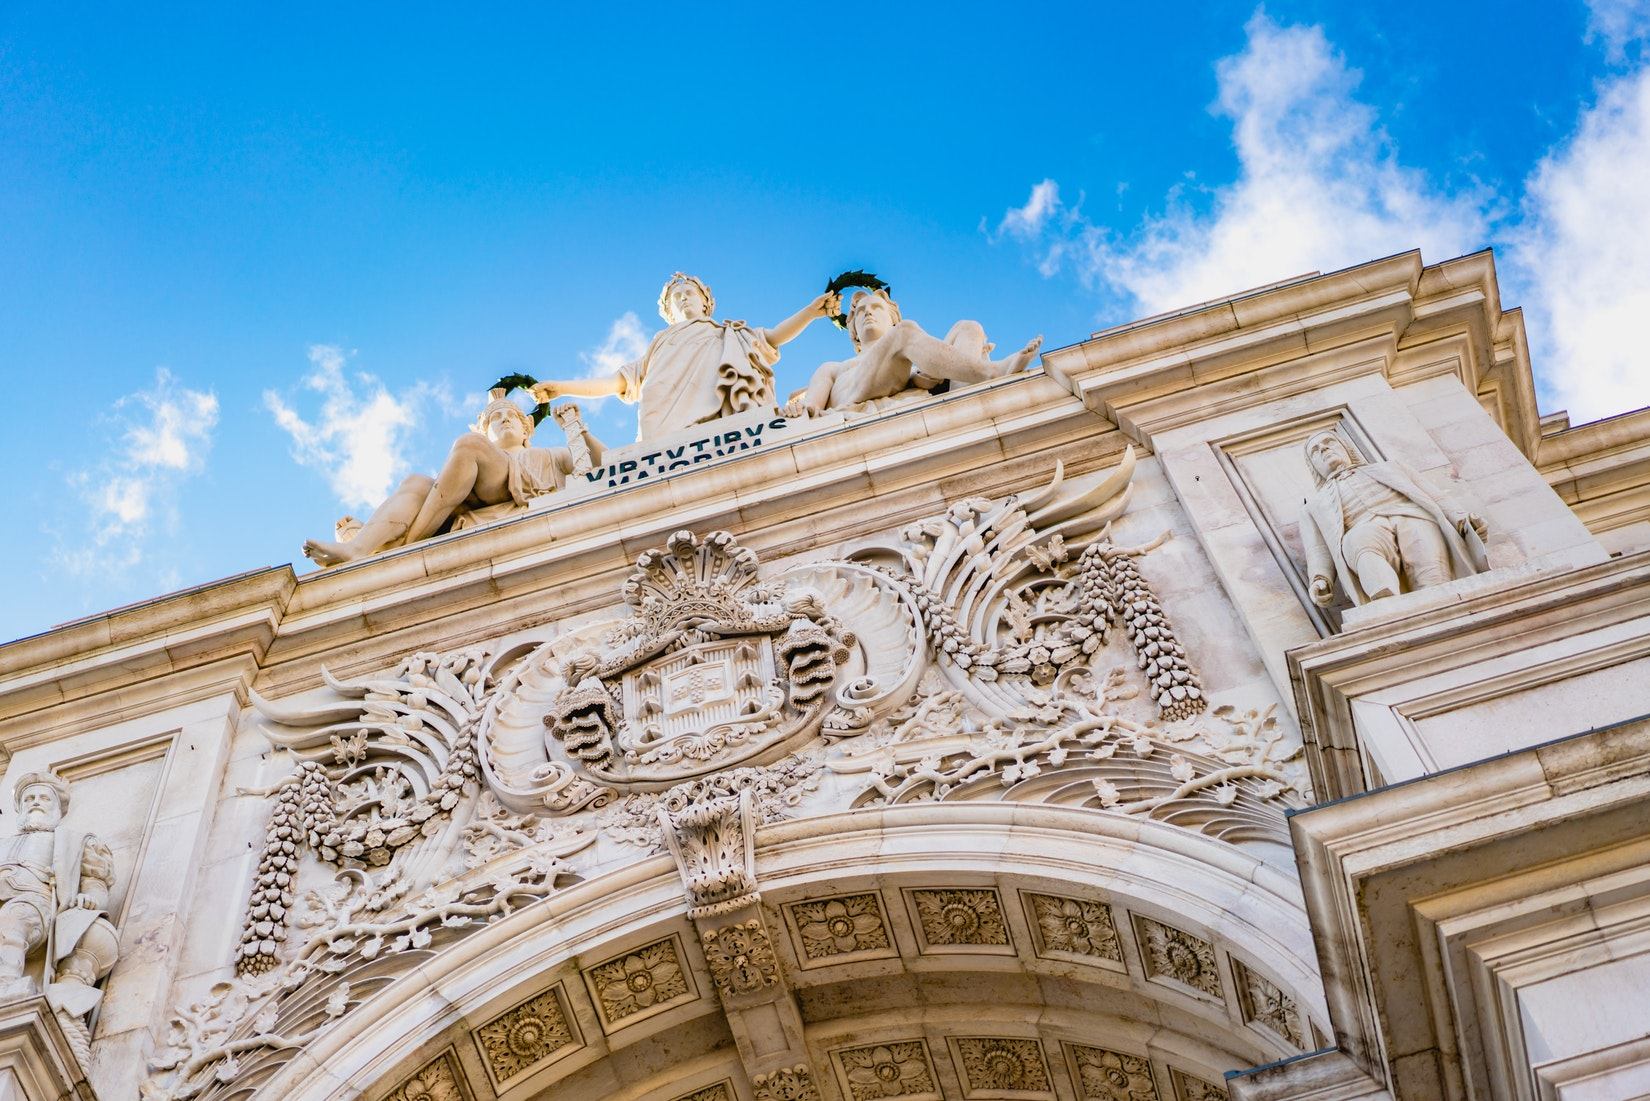 Details in the arch of Praca de Comercio in downtown Lisbon, Portugal